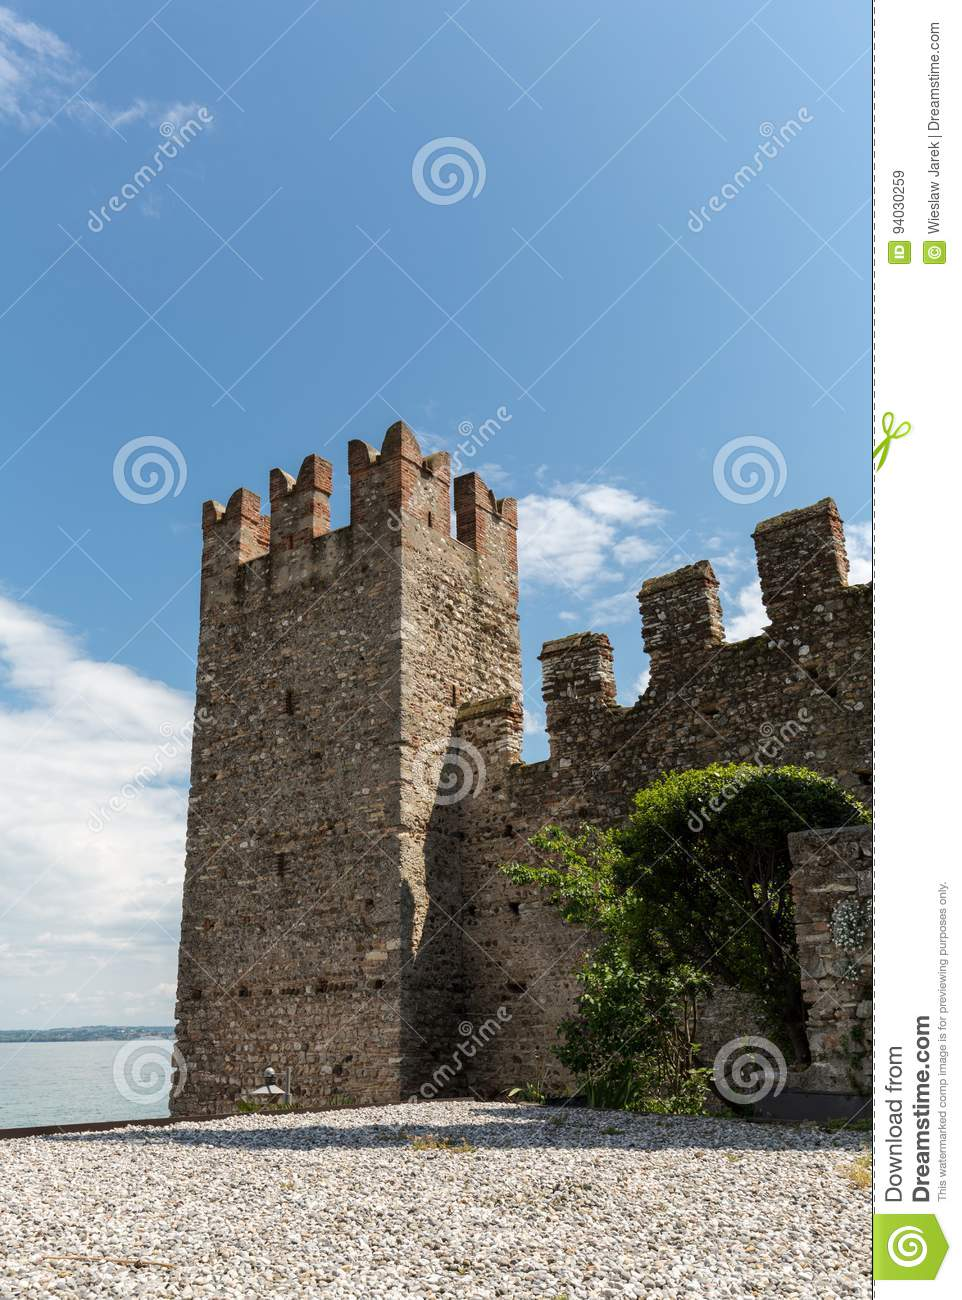 Medieval castle Scaliger in old town Sirmione on lake Lago di Garda.